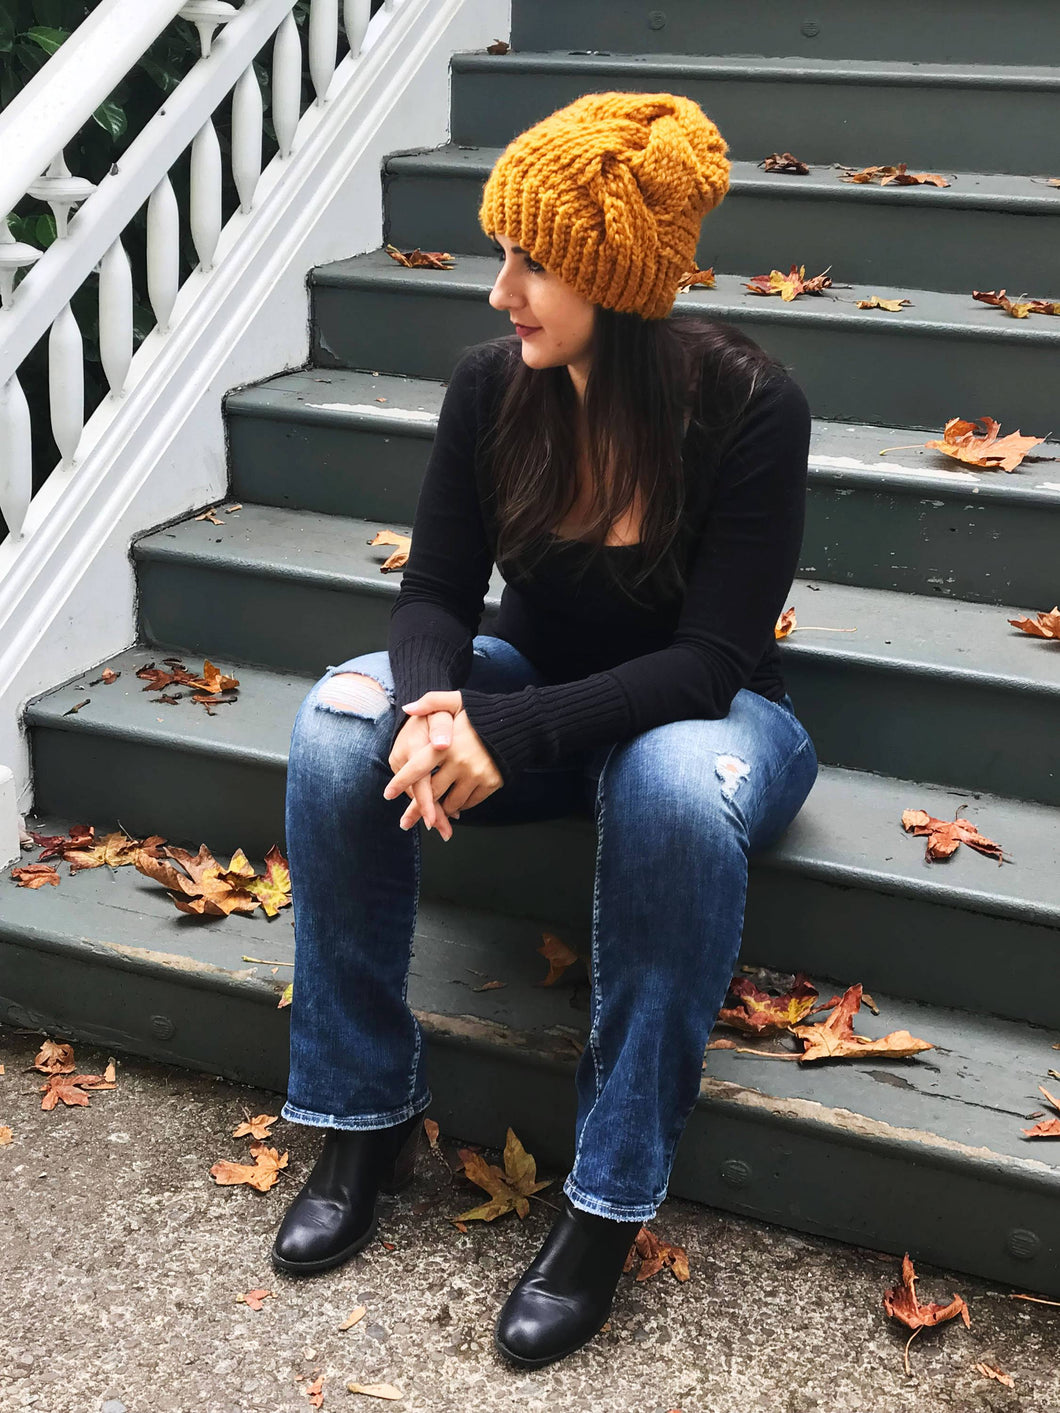 Big Braid Wool Blend Beanie Hat | Hat Toque with Faux Fur Pom Pom | Cable Knit Beanie